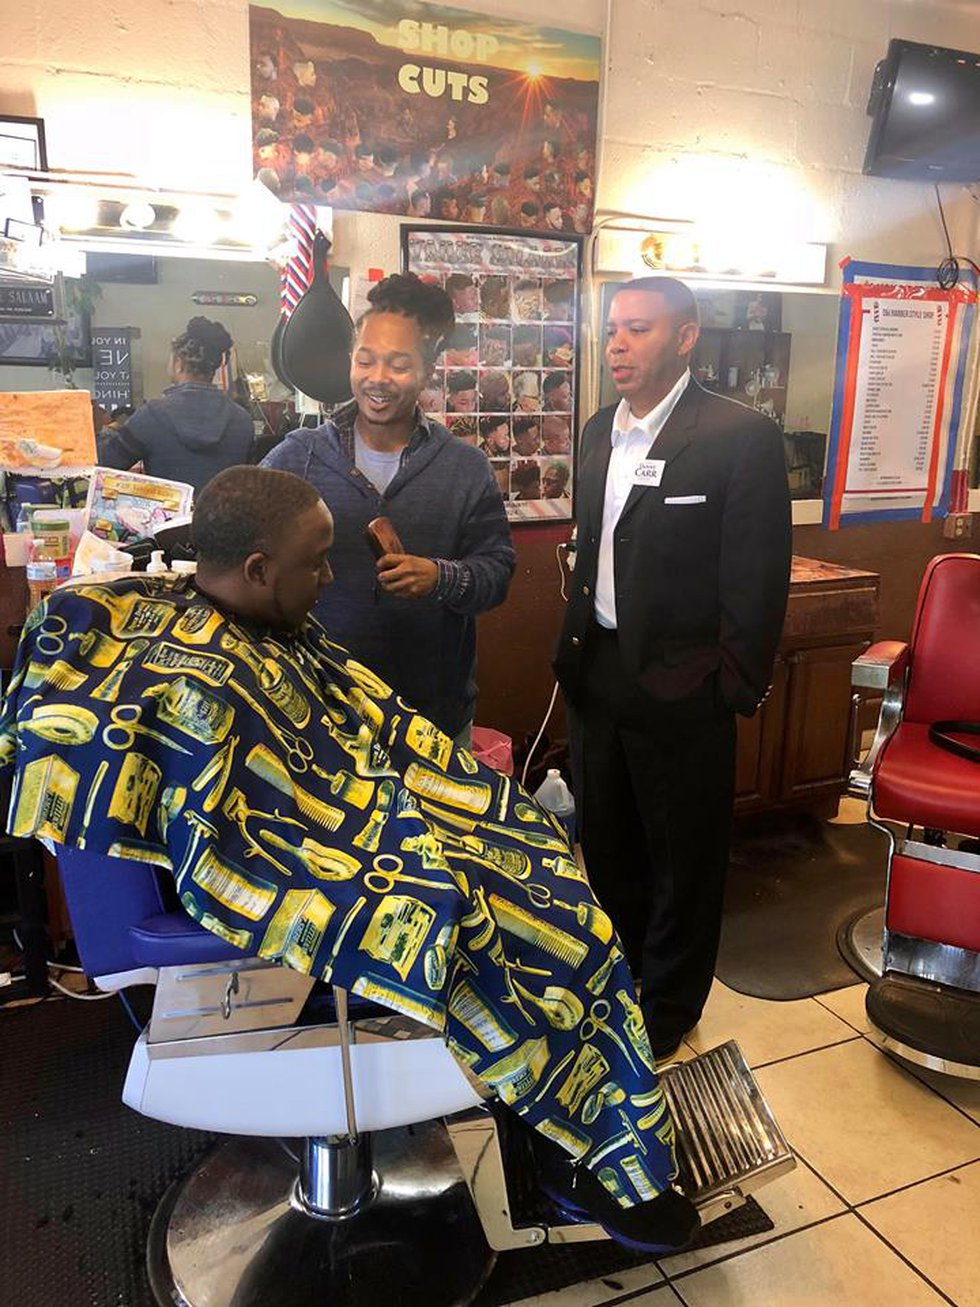 Danny Carr inside the barber shop he owns in Ensley.